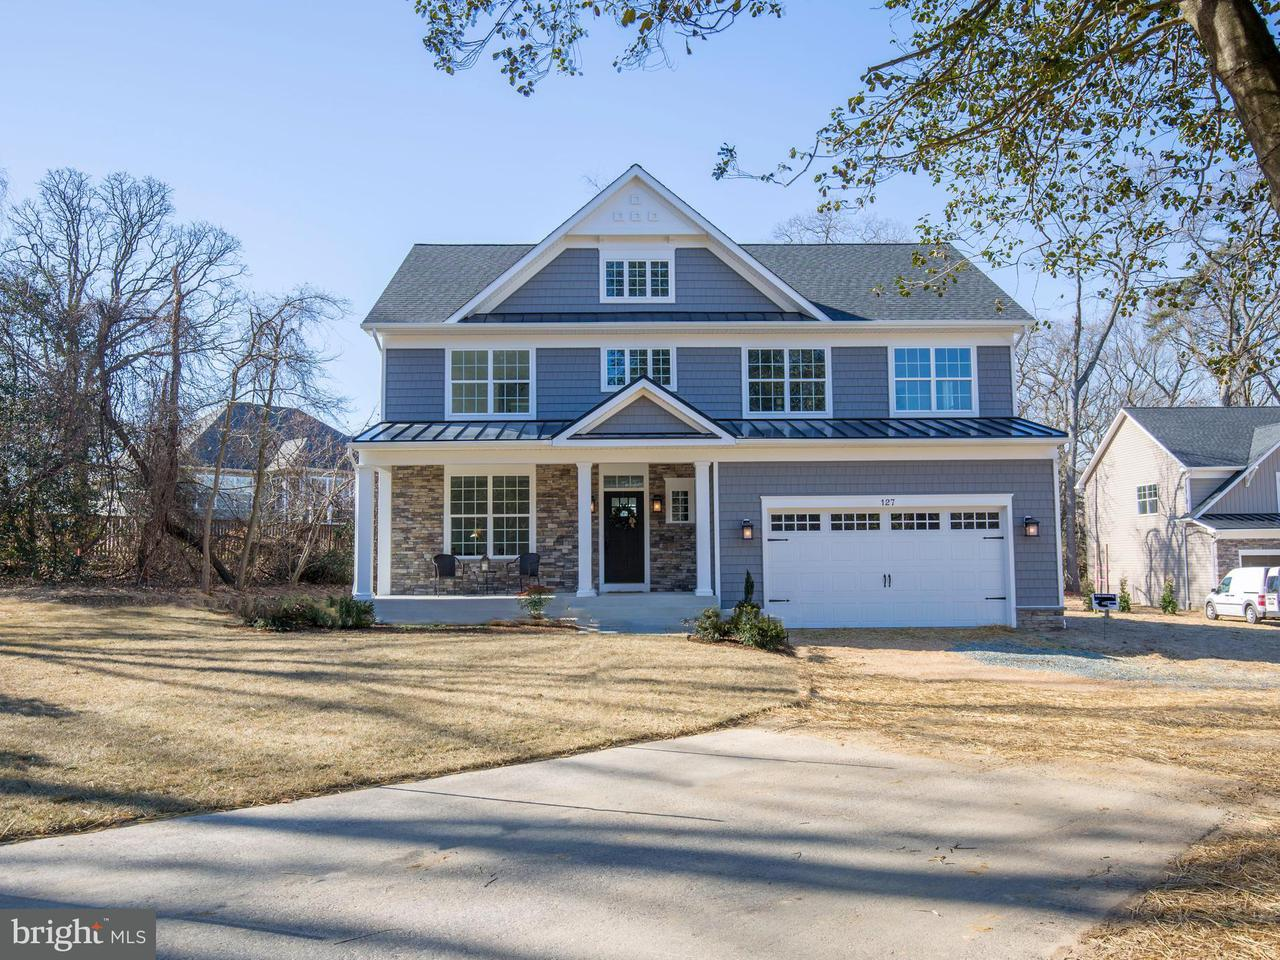 Single Family Home for Sale at 127 Truck House Road 127 Truck House Road Severna Park, Maryland 21146 United States